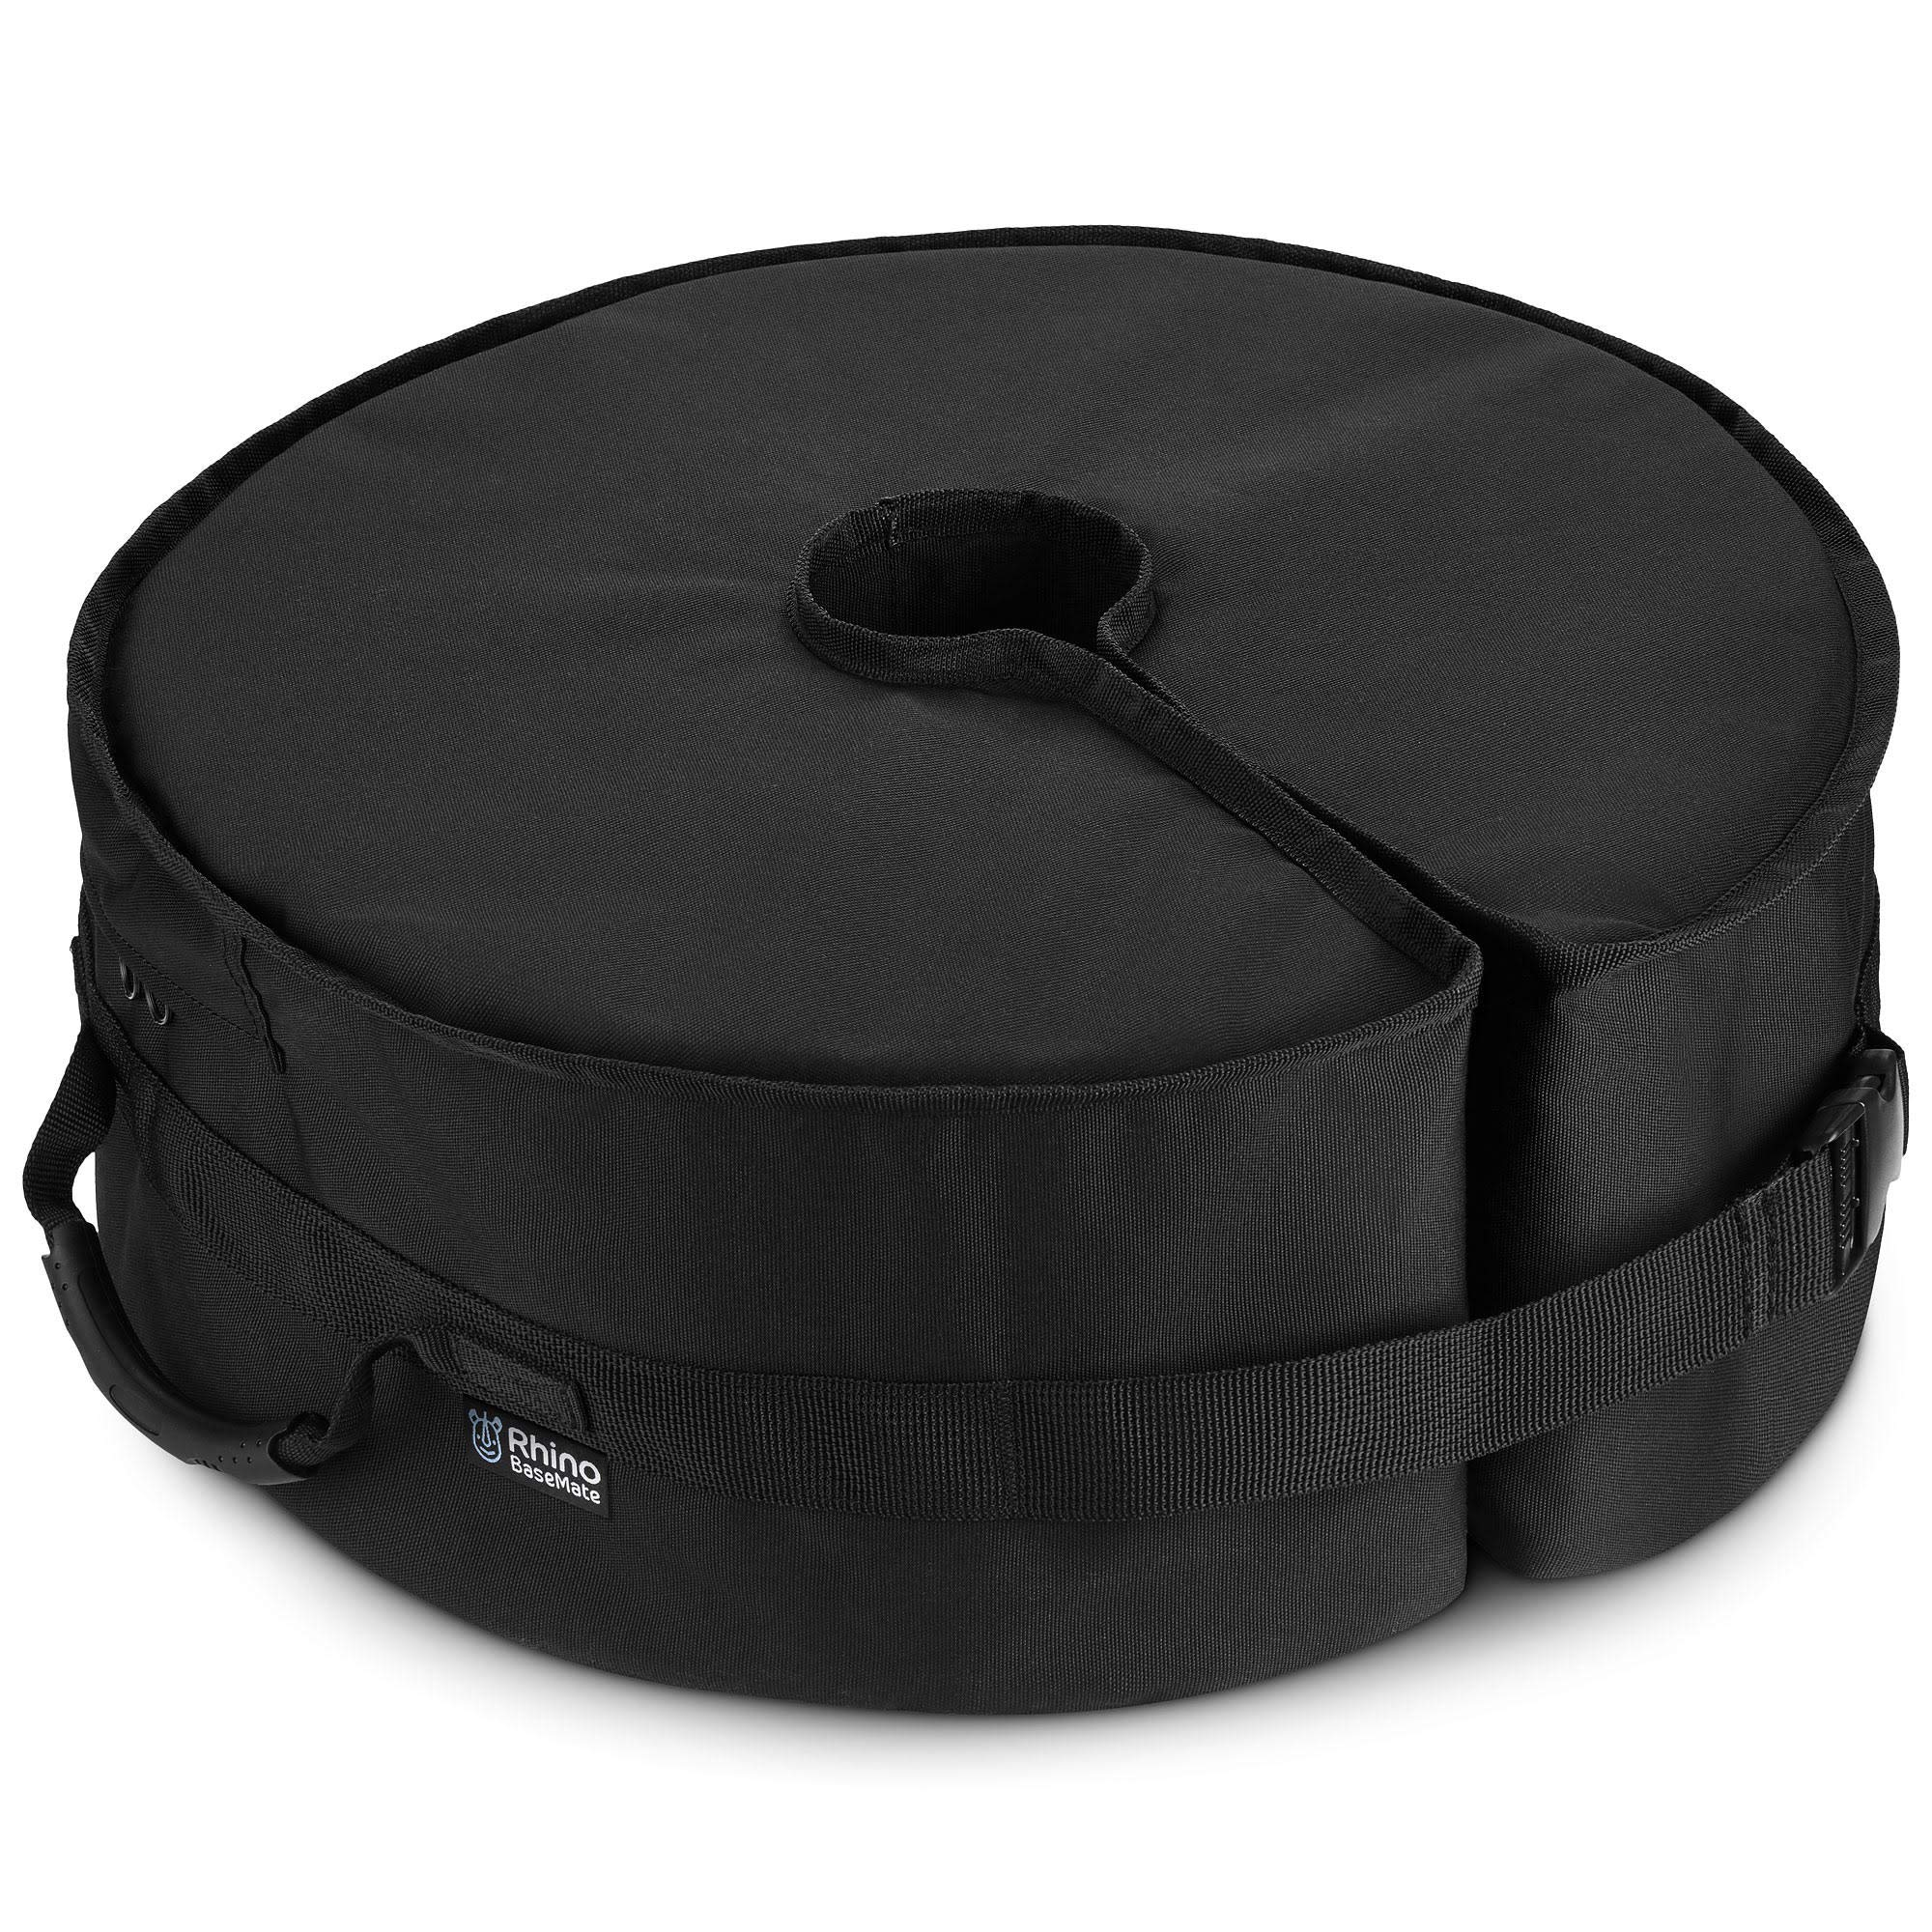 Rhino Round Umbrella Base Weight with Side Slot Opening, 18'' ~ Fits Any Offset, Cantilever & Any Outdoor Patio Umbrella Stand ~ Easy Set up (Black) by Rhino BaseMate